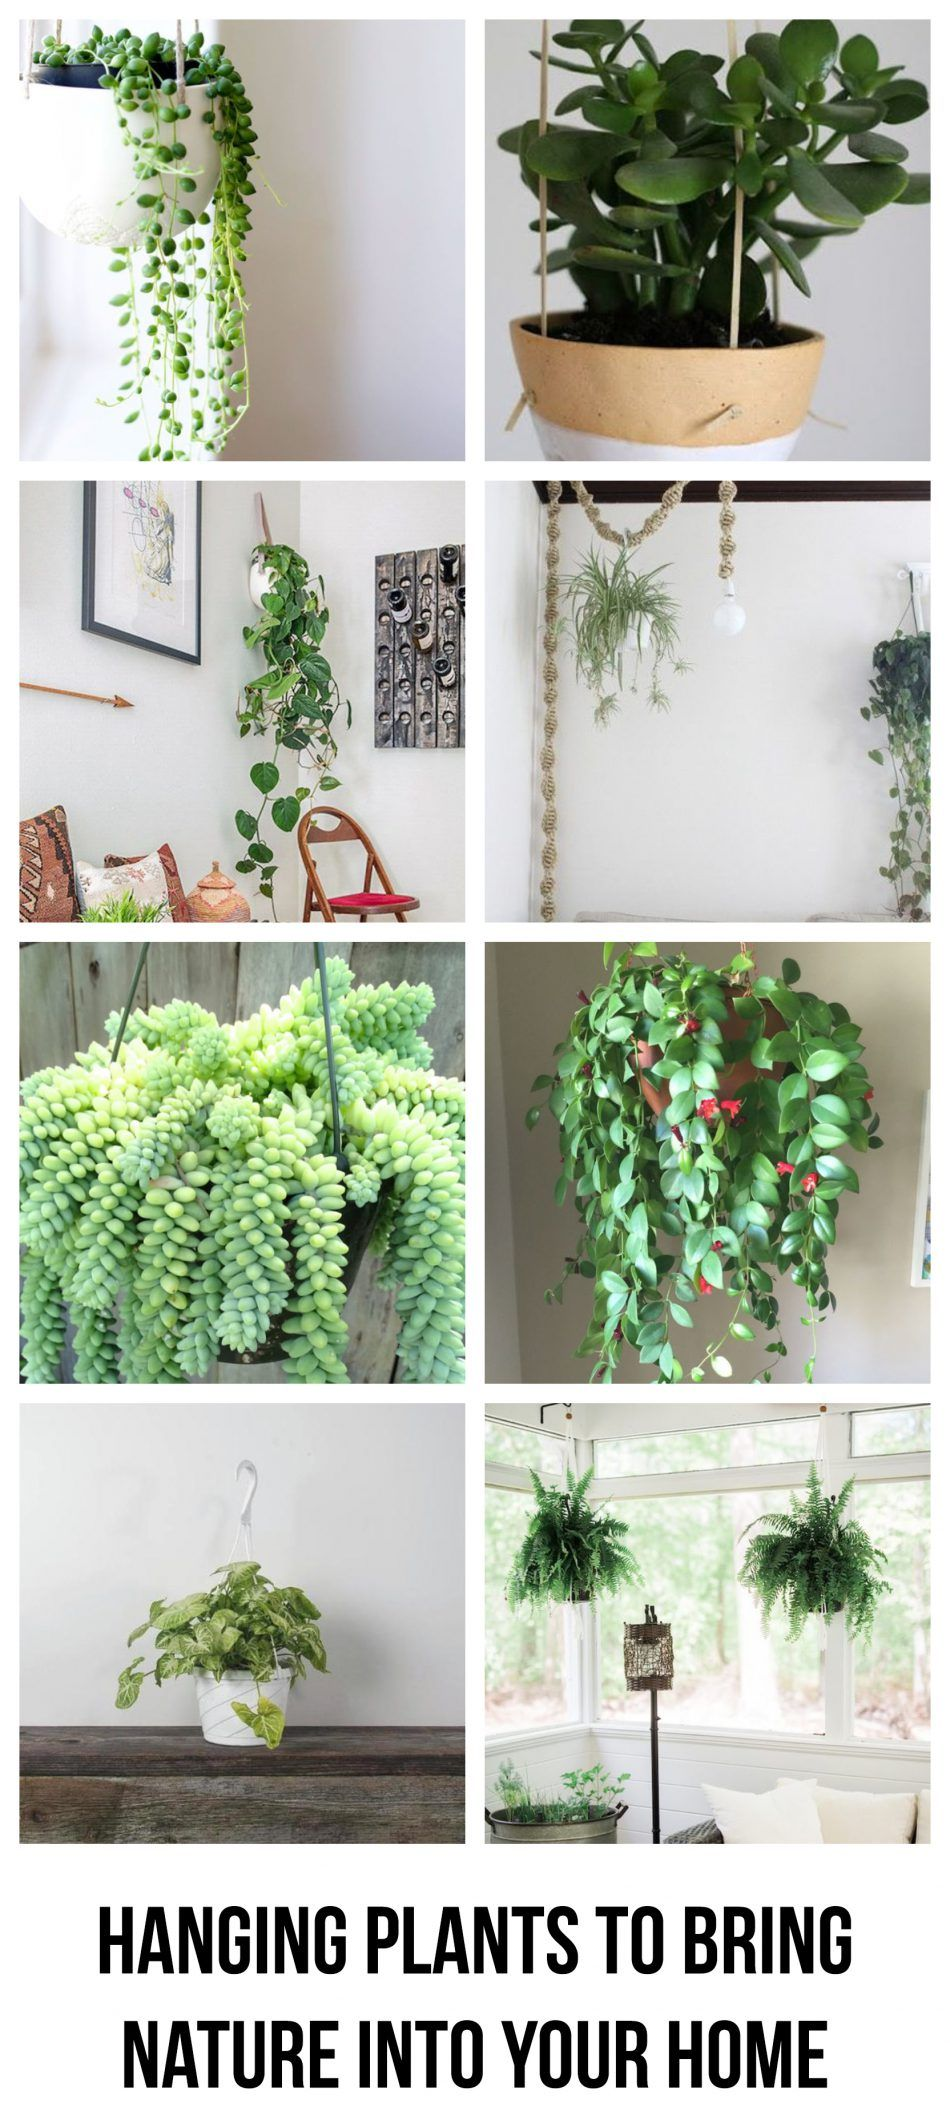 Hanging plants to bring nature into your home #patioplants